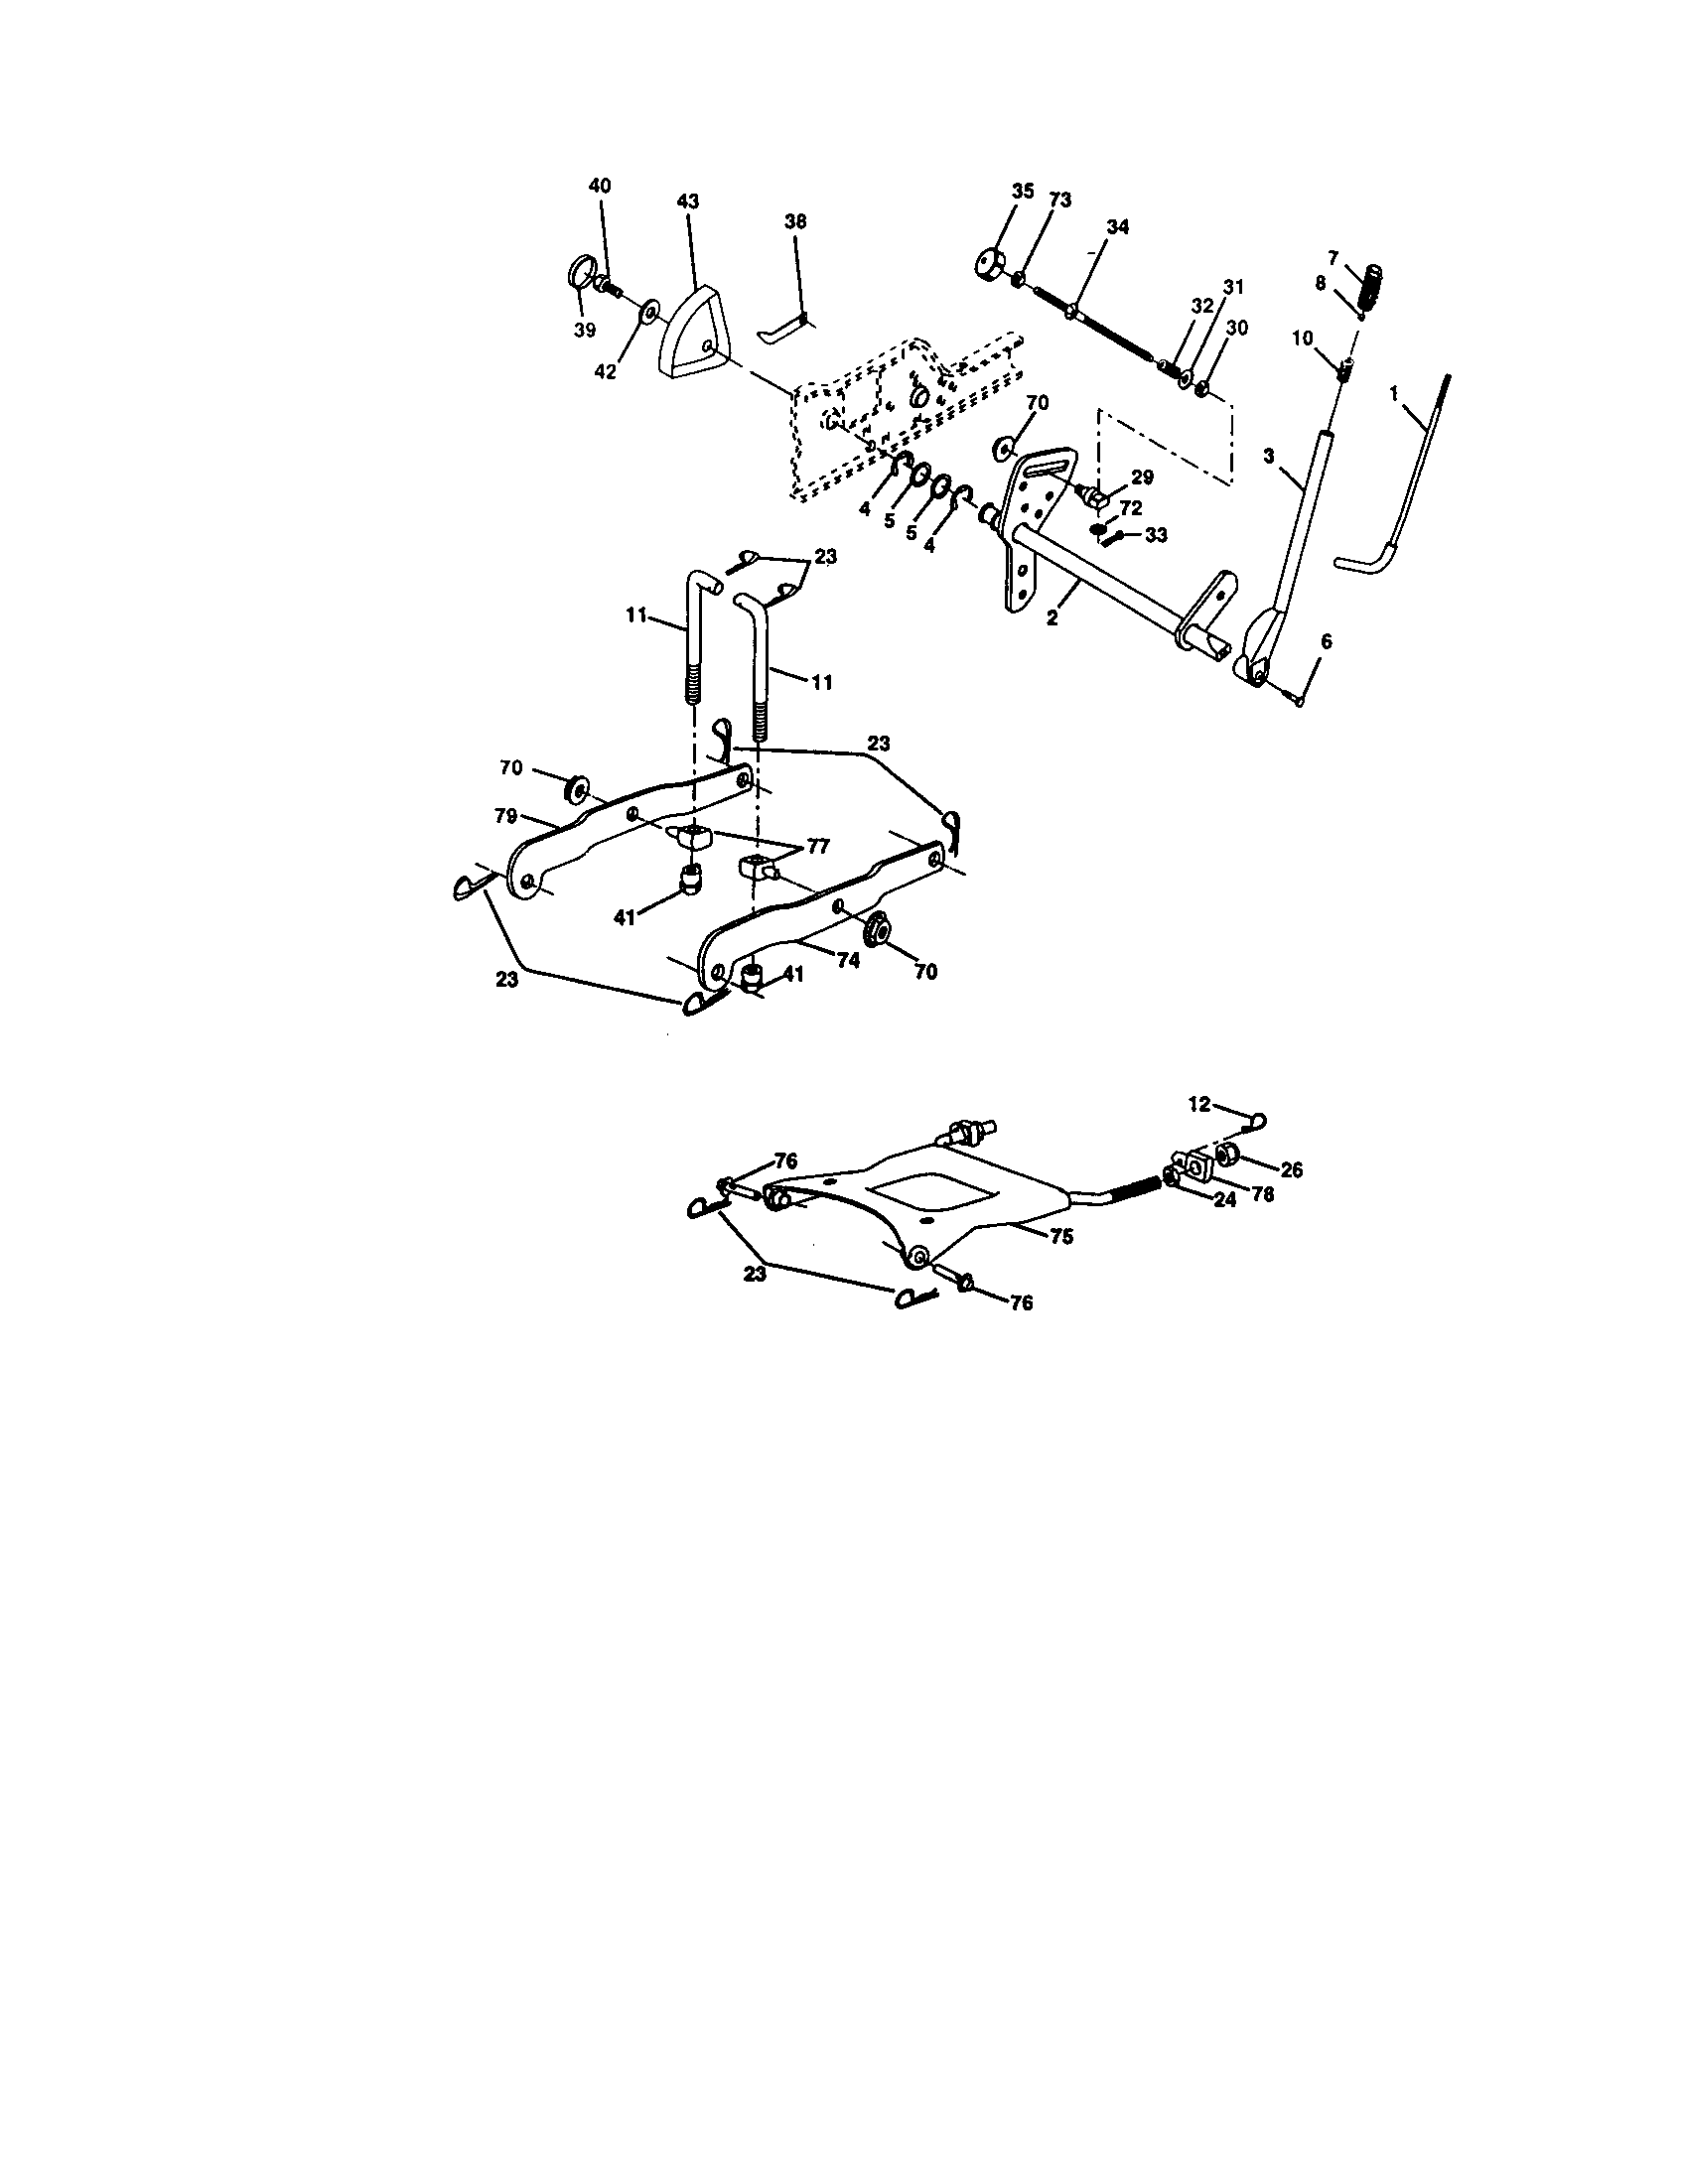 LIFT ASSEMBLY Diagram & Parts List for Model 917276080